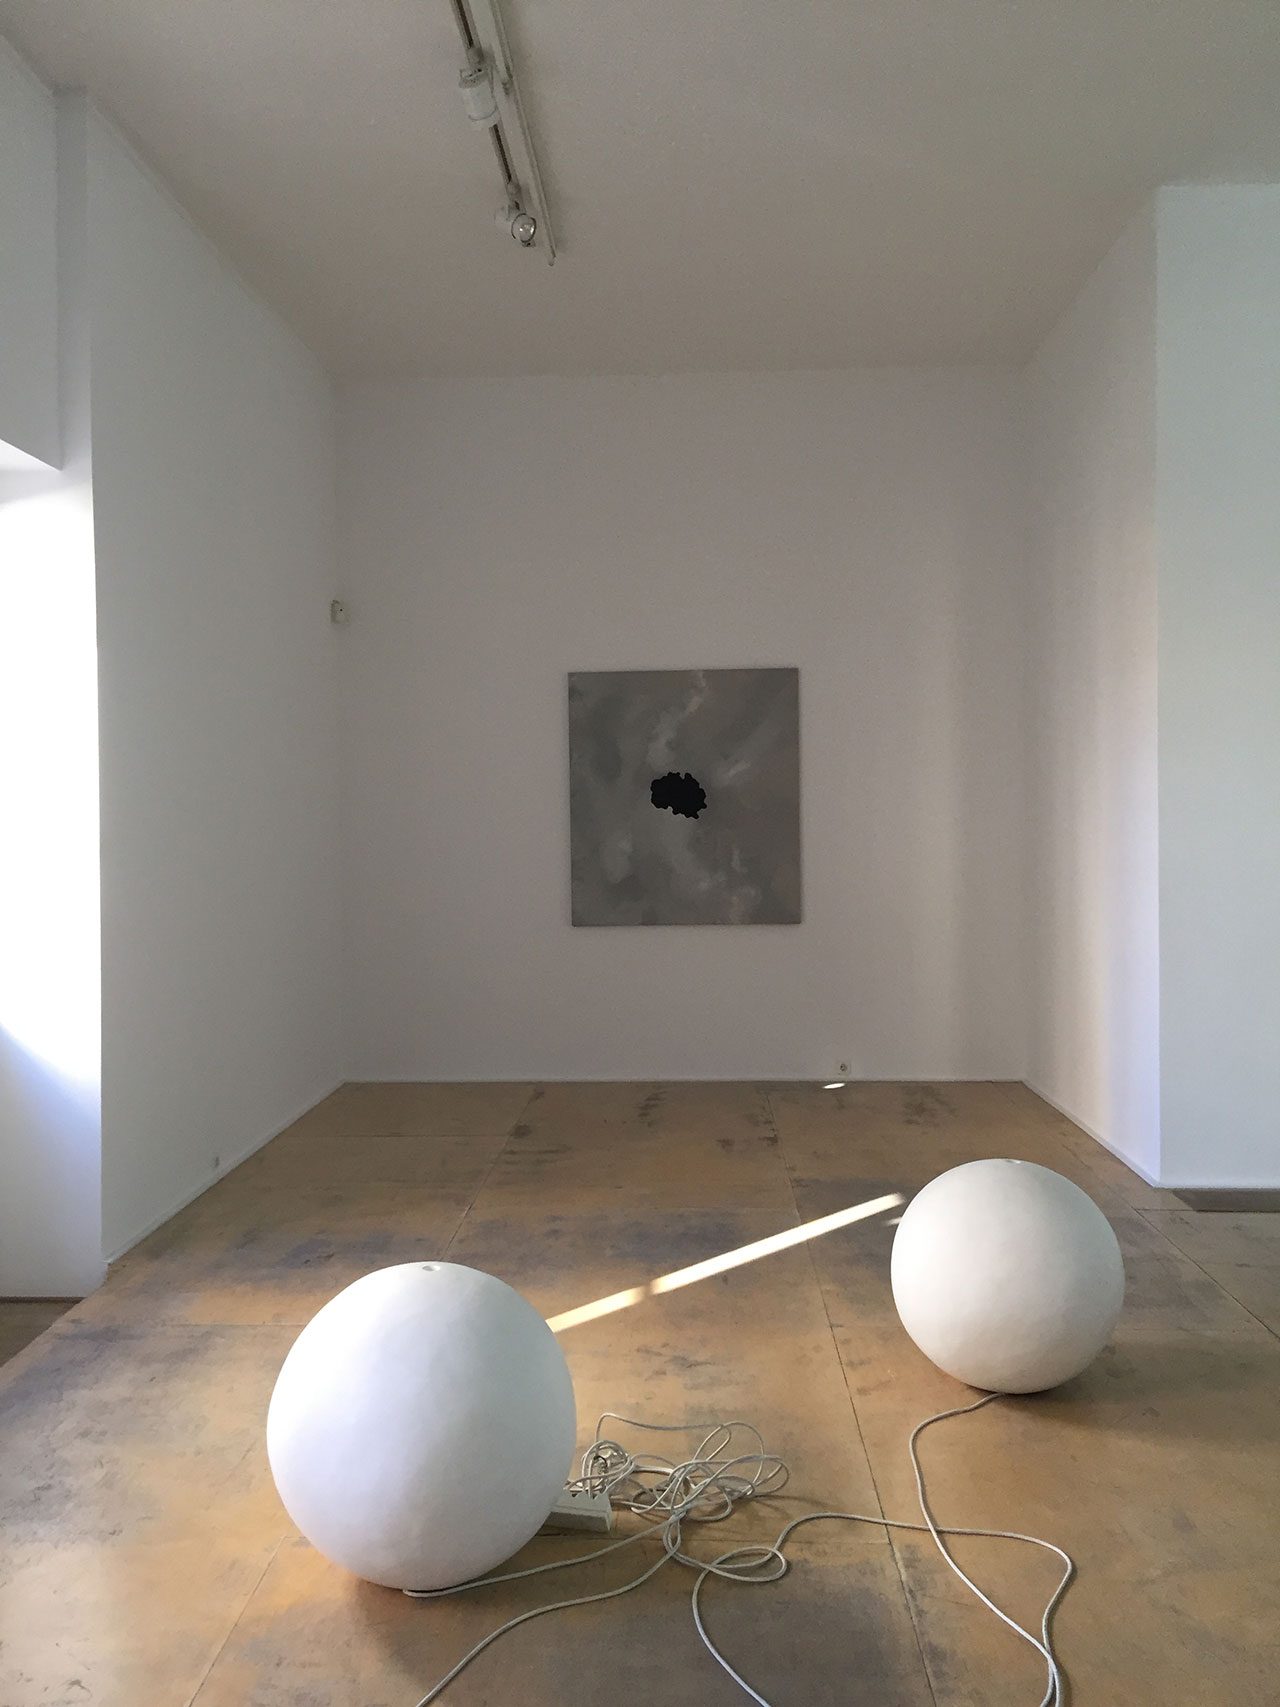 Installation view at Rebecca Camhi gallery. Photo by Kiriakos Spirou.